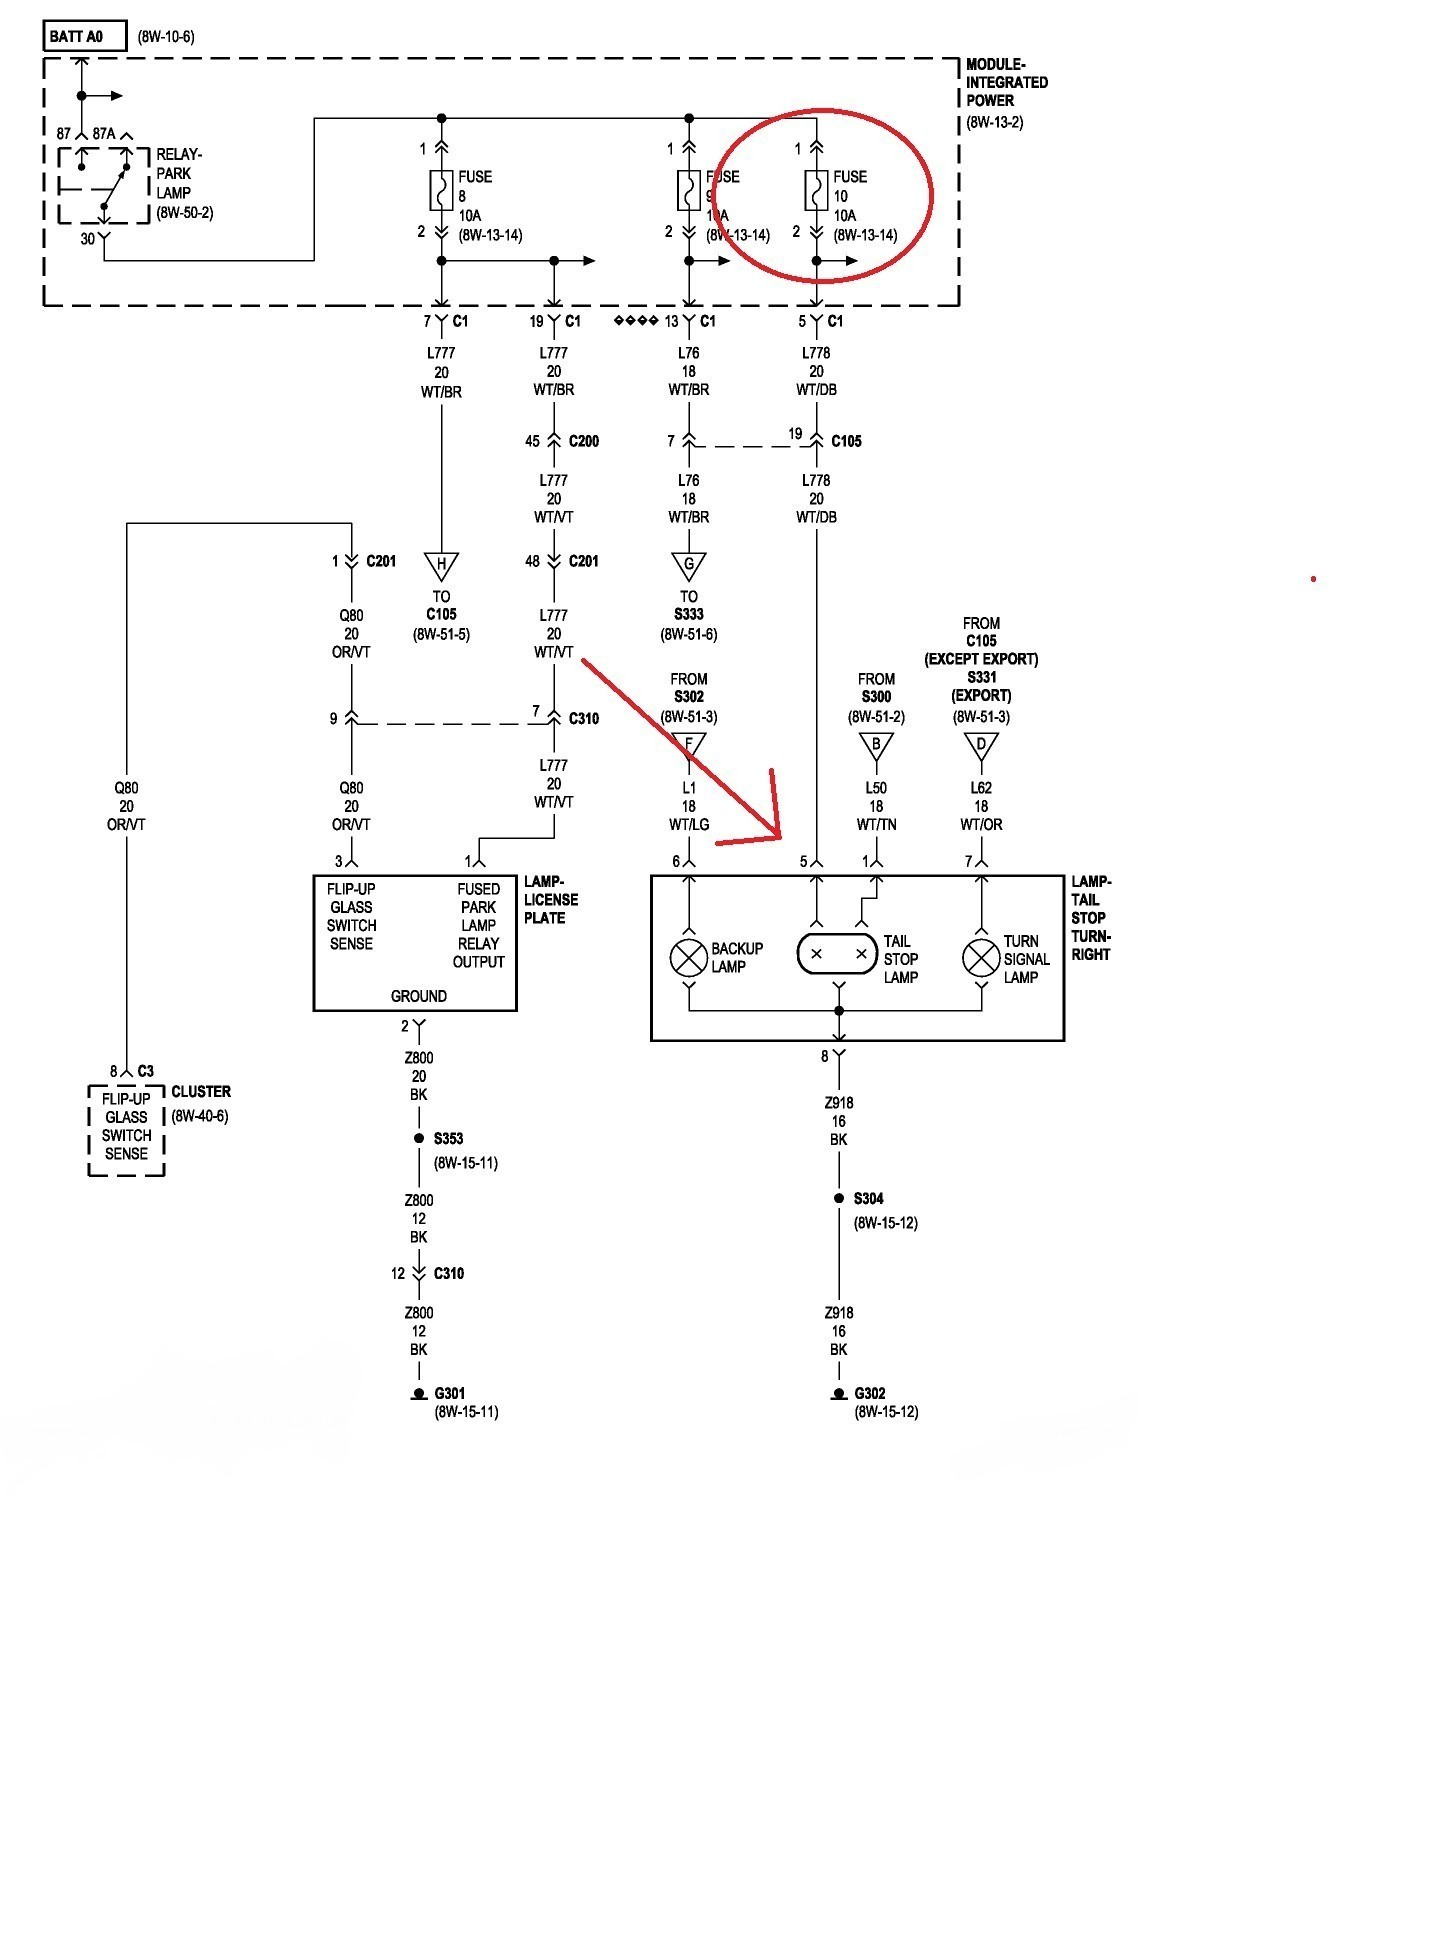 DIAGRAM] Jeep Liberty Radio Wiring Diagram Picture FULL Version HD Quality  Diagram Picture - L77973HDWIRING.CONTOROCK.ITCONTO ROCK